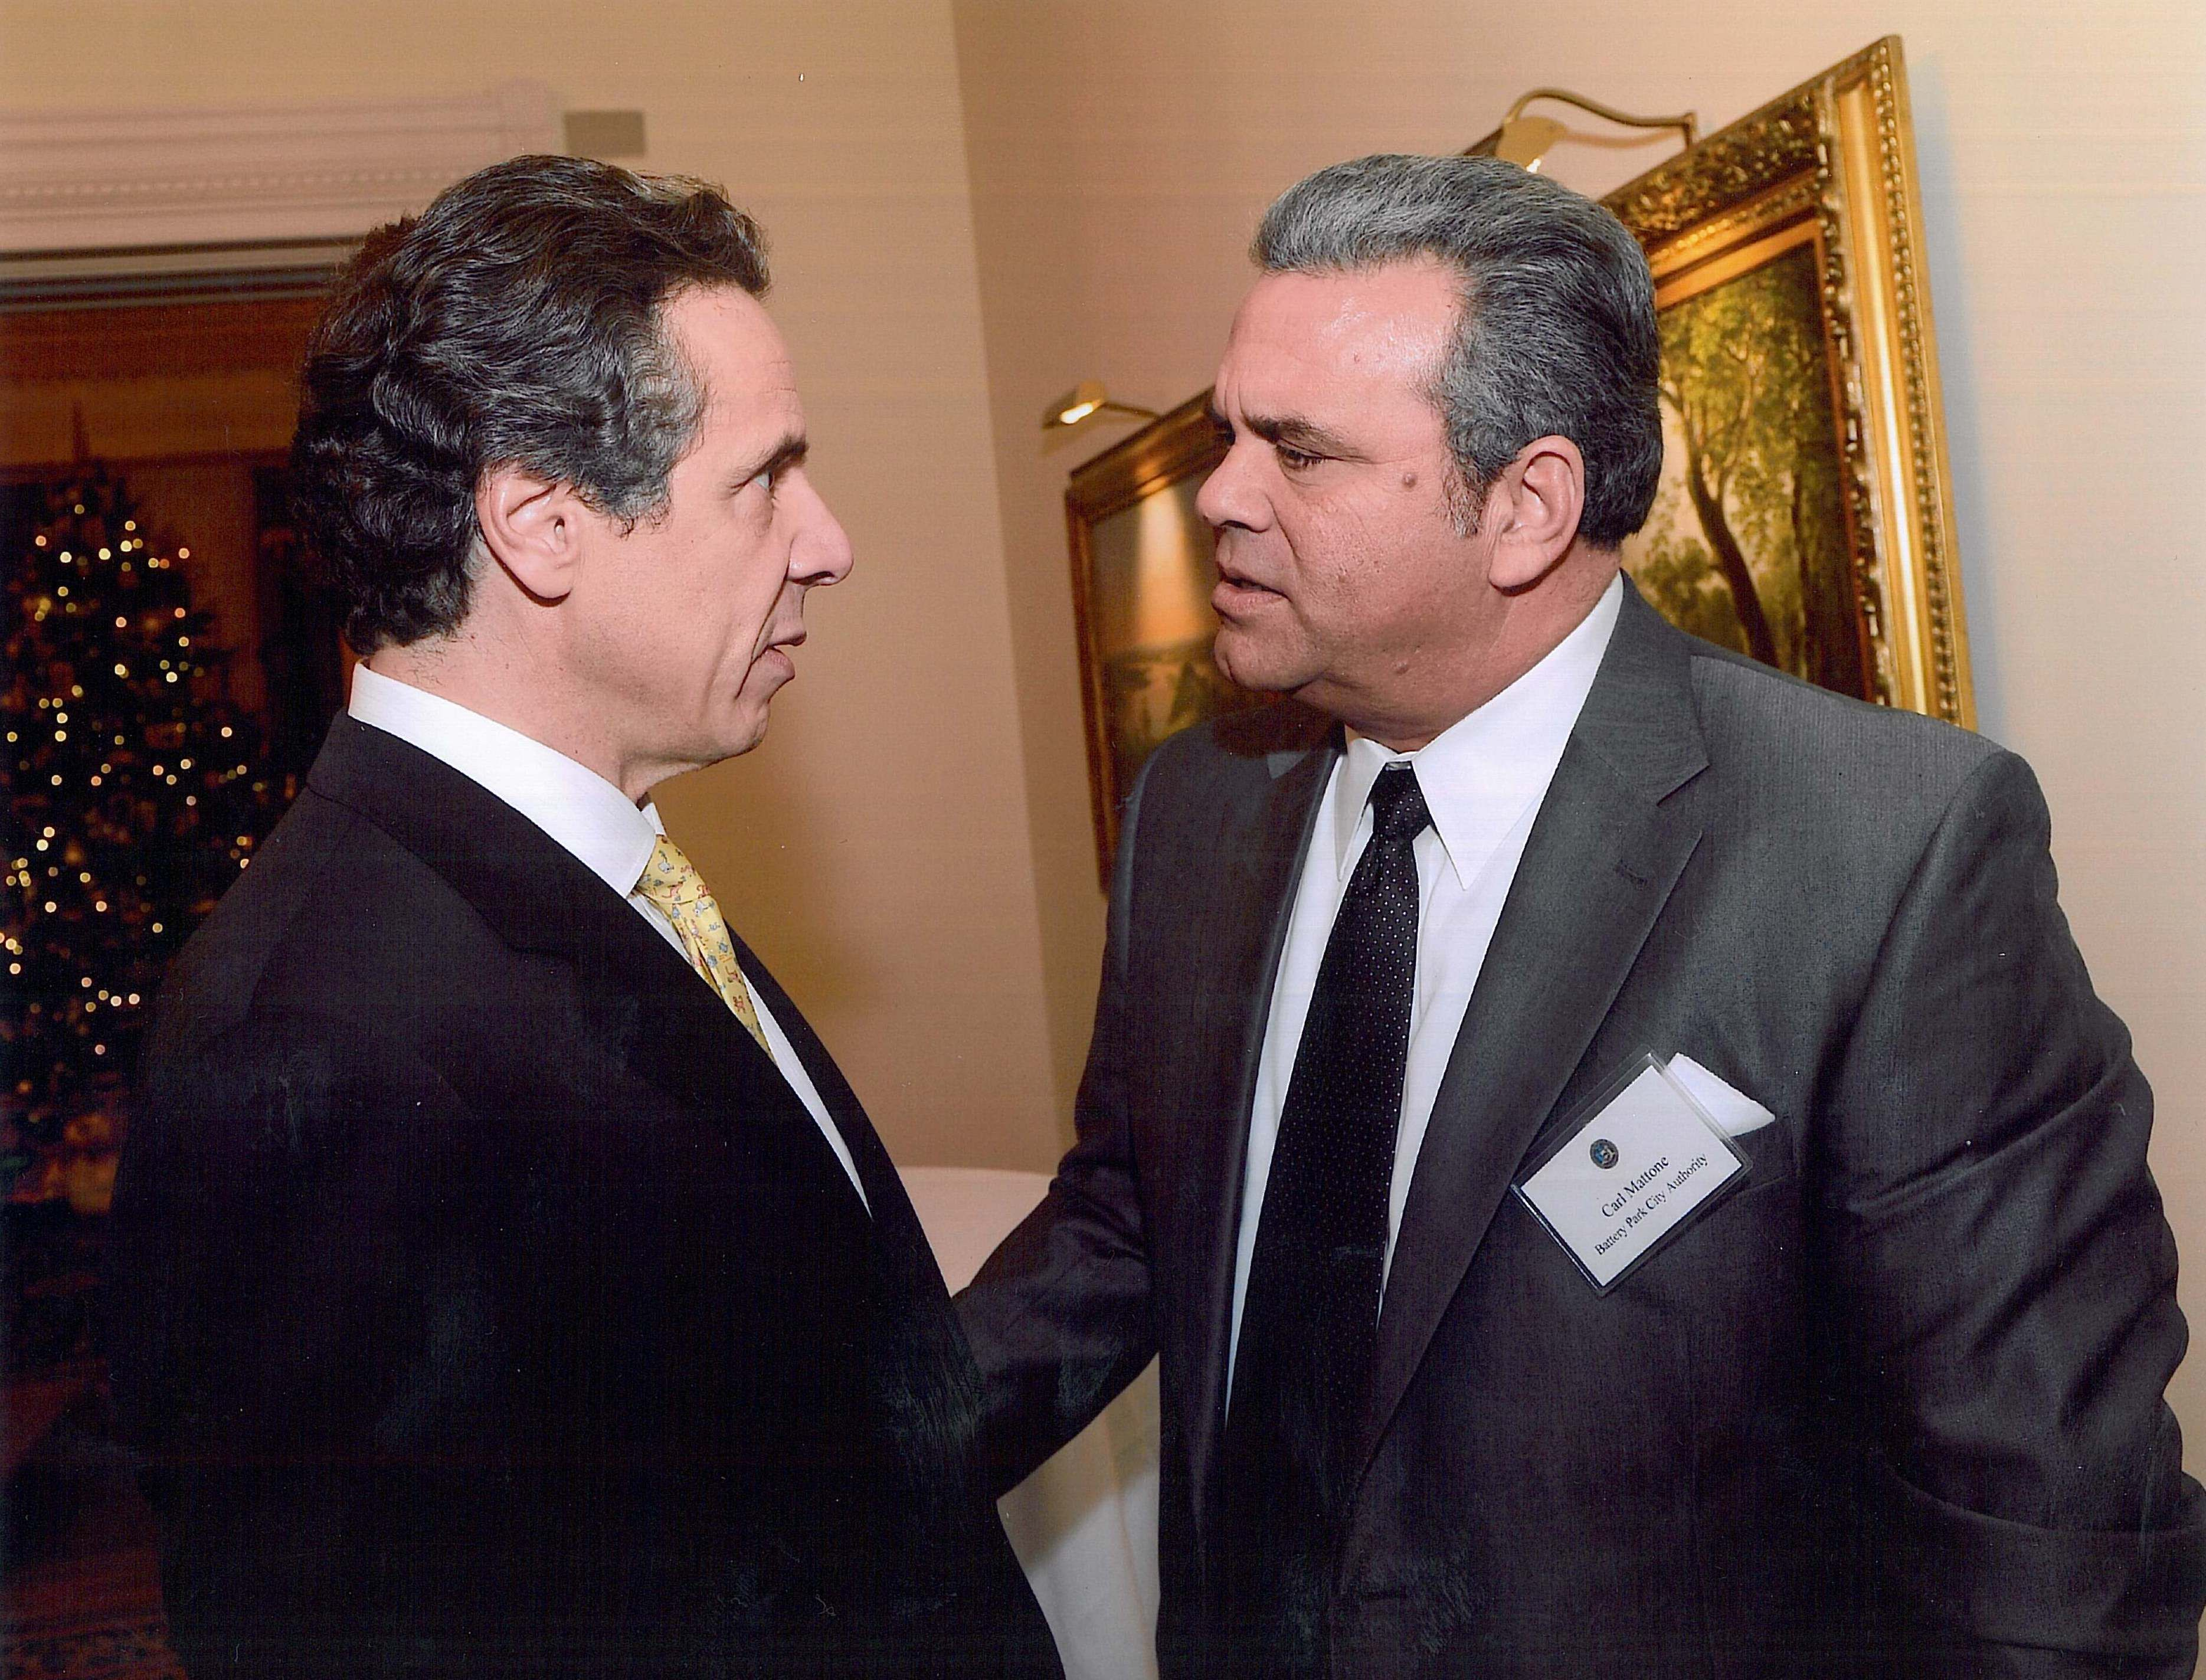 New York Governor Andrew Cuomo And Battery Park Authority Board Member Carl Mattone Andrewcuomo Carlmattone Andrew Cuomo Governor New York